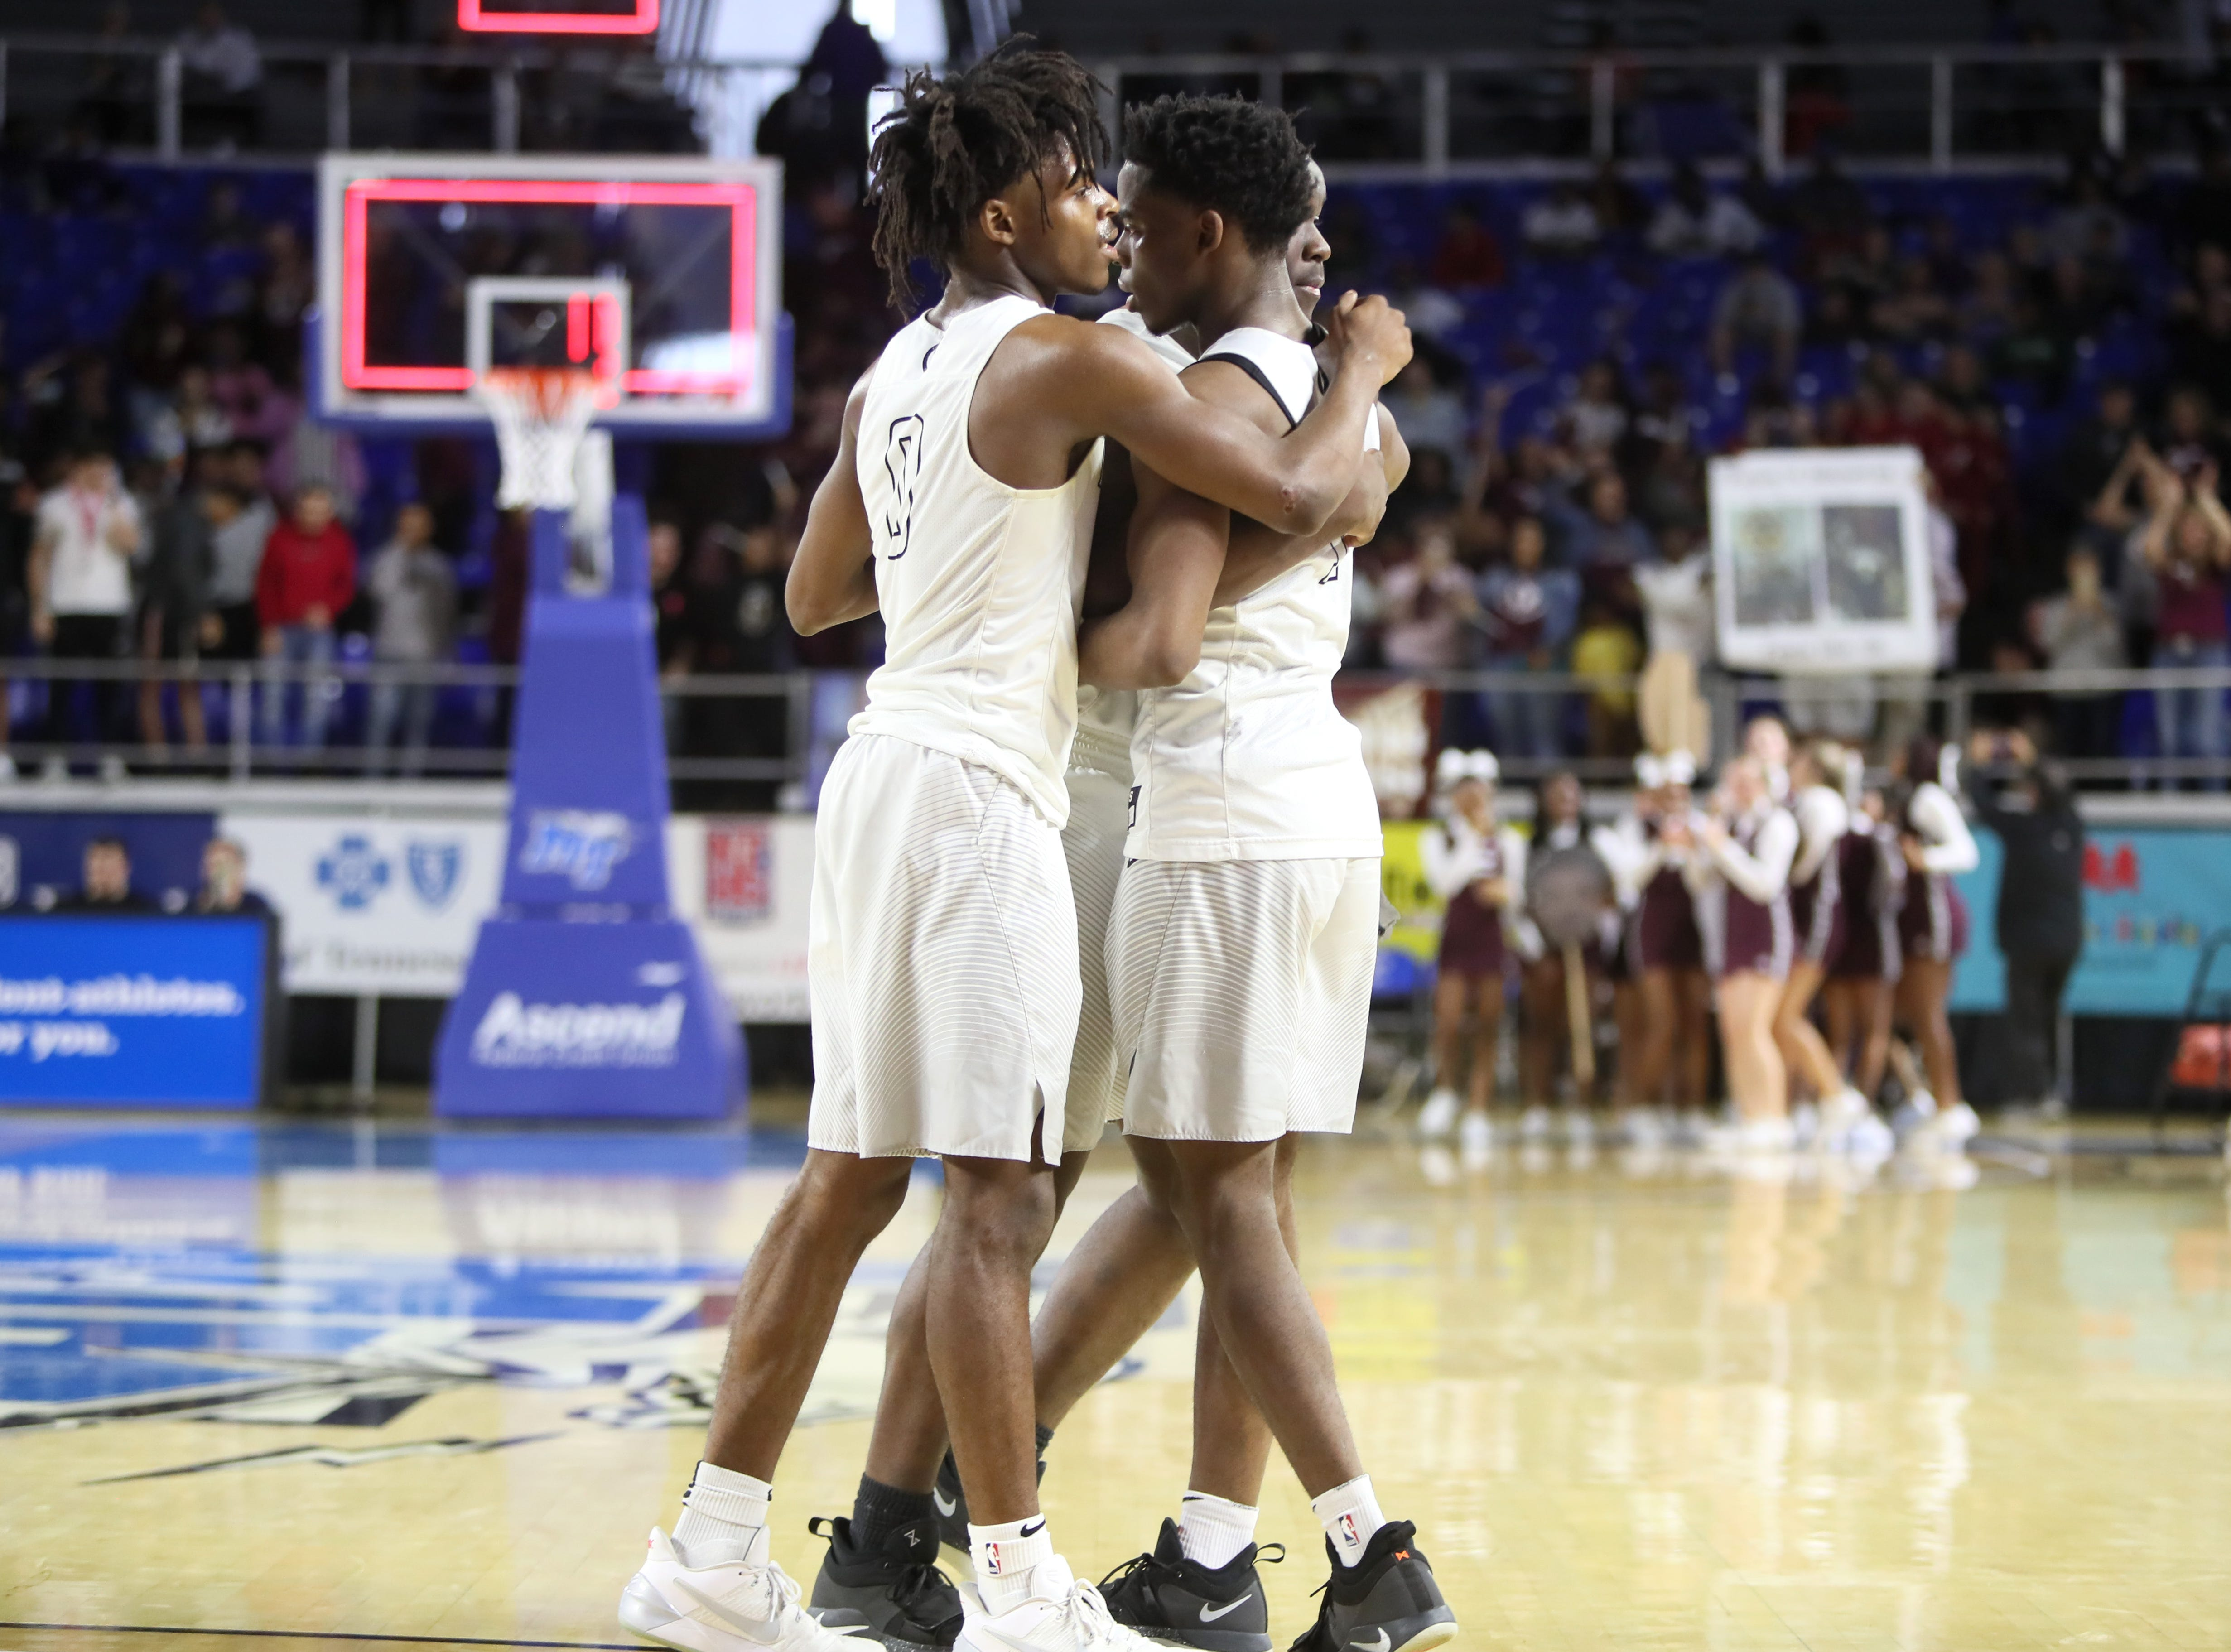 Mitchell Brothers Michael Rice and Mikell Rice embrace teammate Cameron Powers after their 44-41 overtime loss to Fulton during the TSSAA Division I basketball state tournament in Murfreesboro on Wednesday, March 13, 2019.